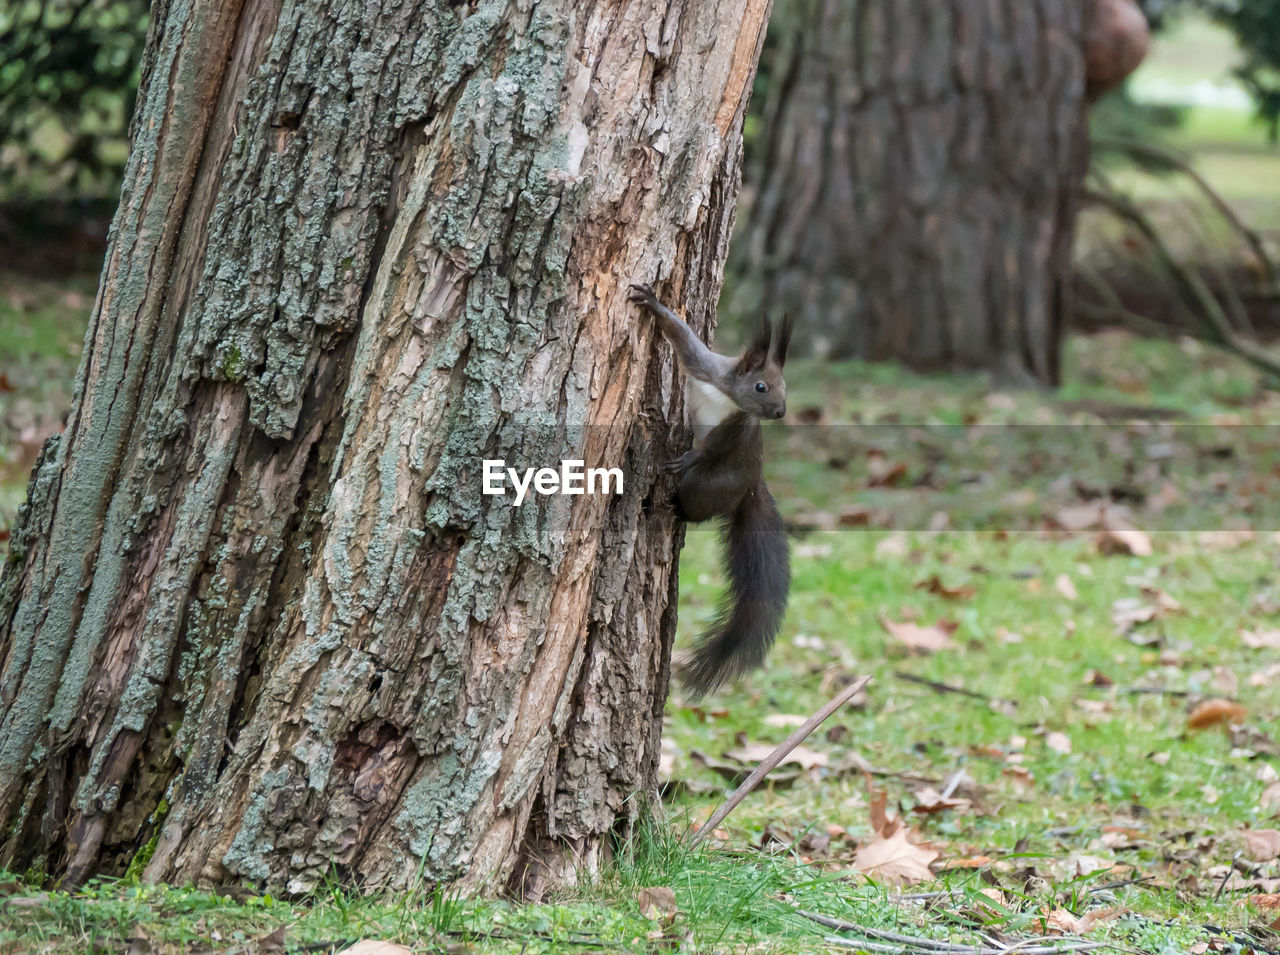 one animal, tree trunk, tree, animal themes, animals in the wild, squirrel, nature, mammal, no people, animal wildlife, day, outdoors, close-up